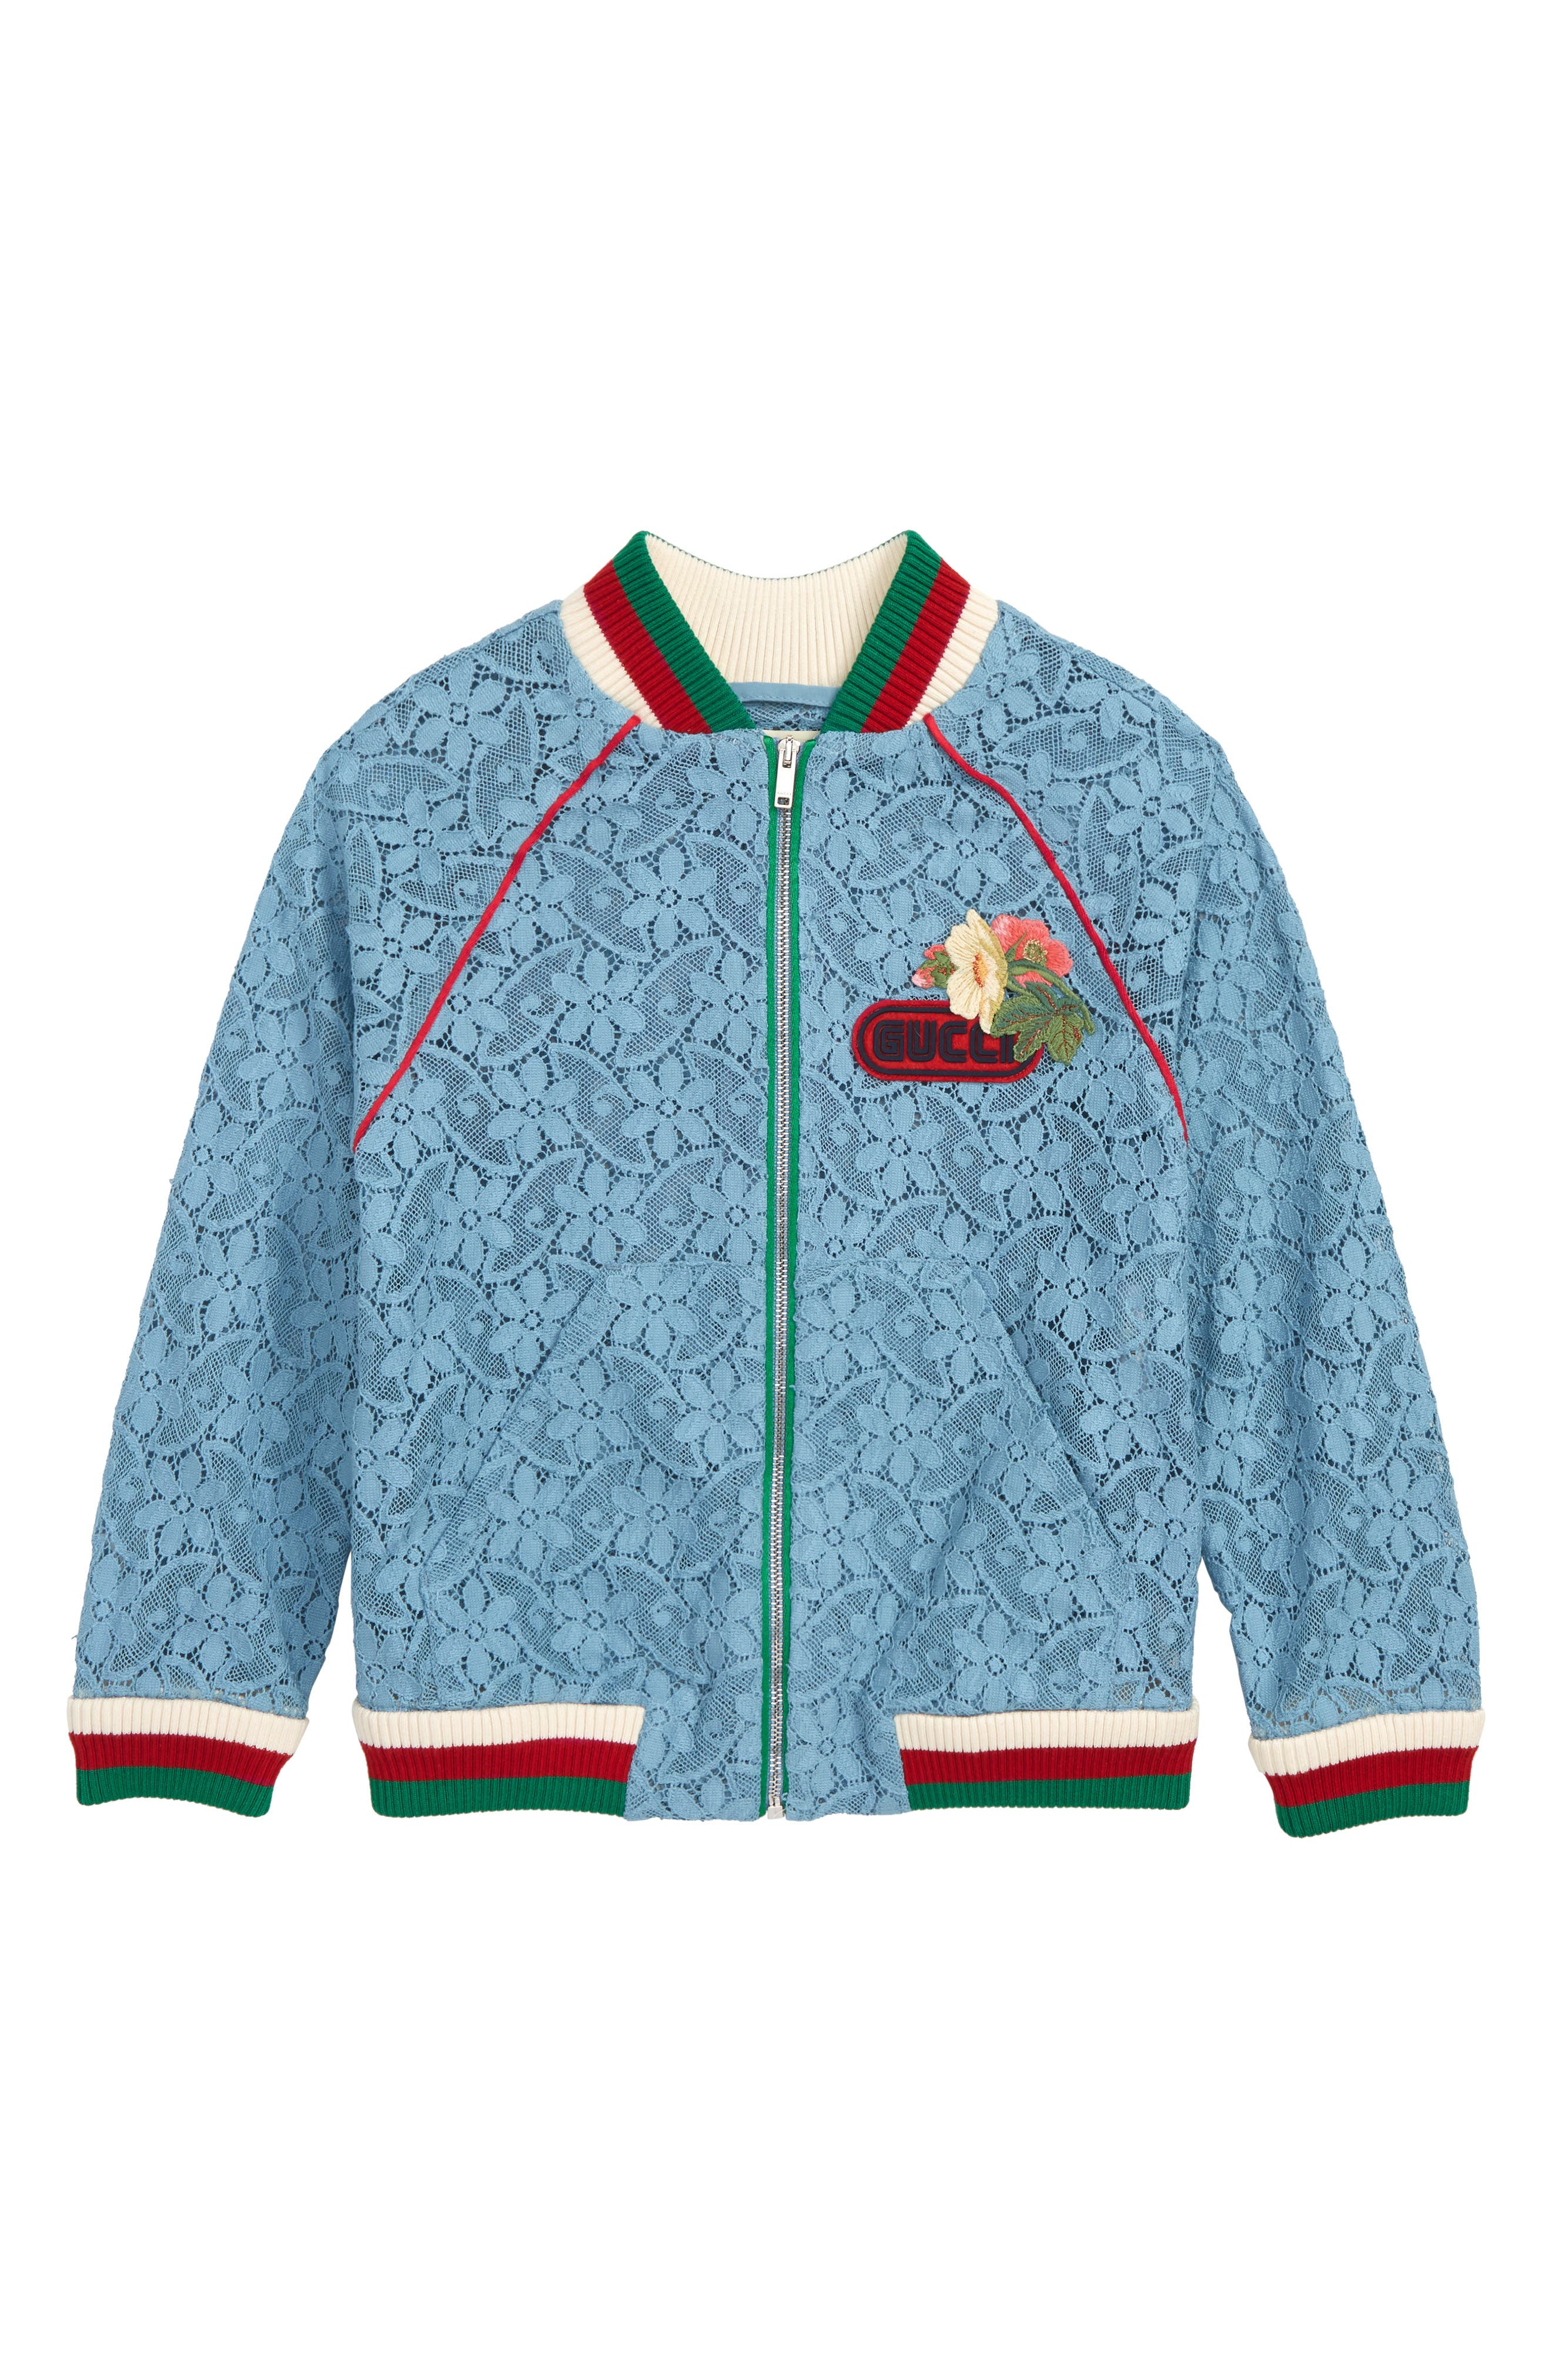 GUCCI,                             Lace Bomber Jacket,                             Main thumbnail 1, color,                             SEA CLEAR BLUE